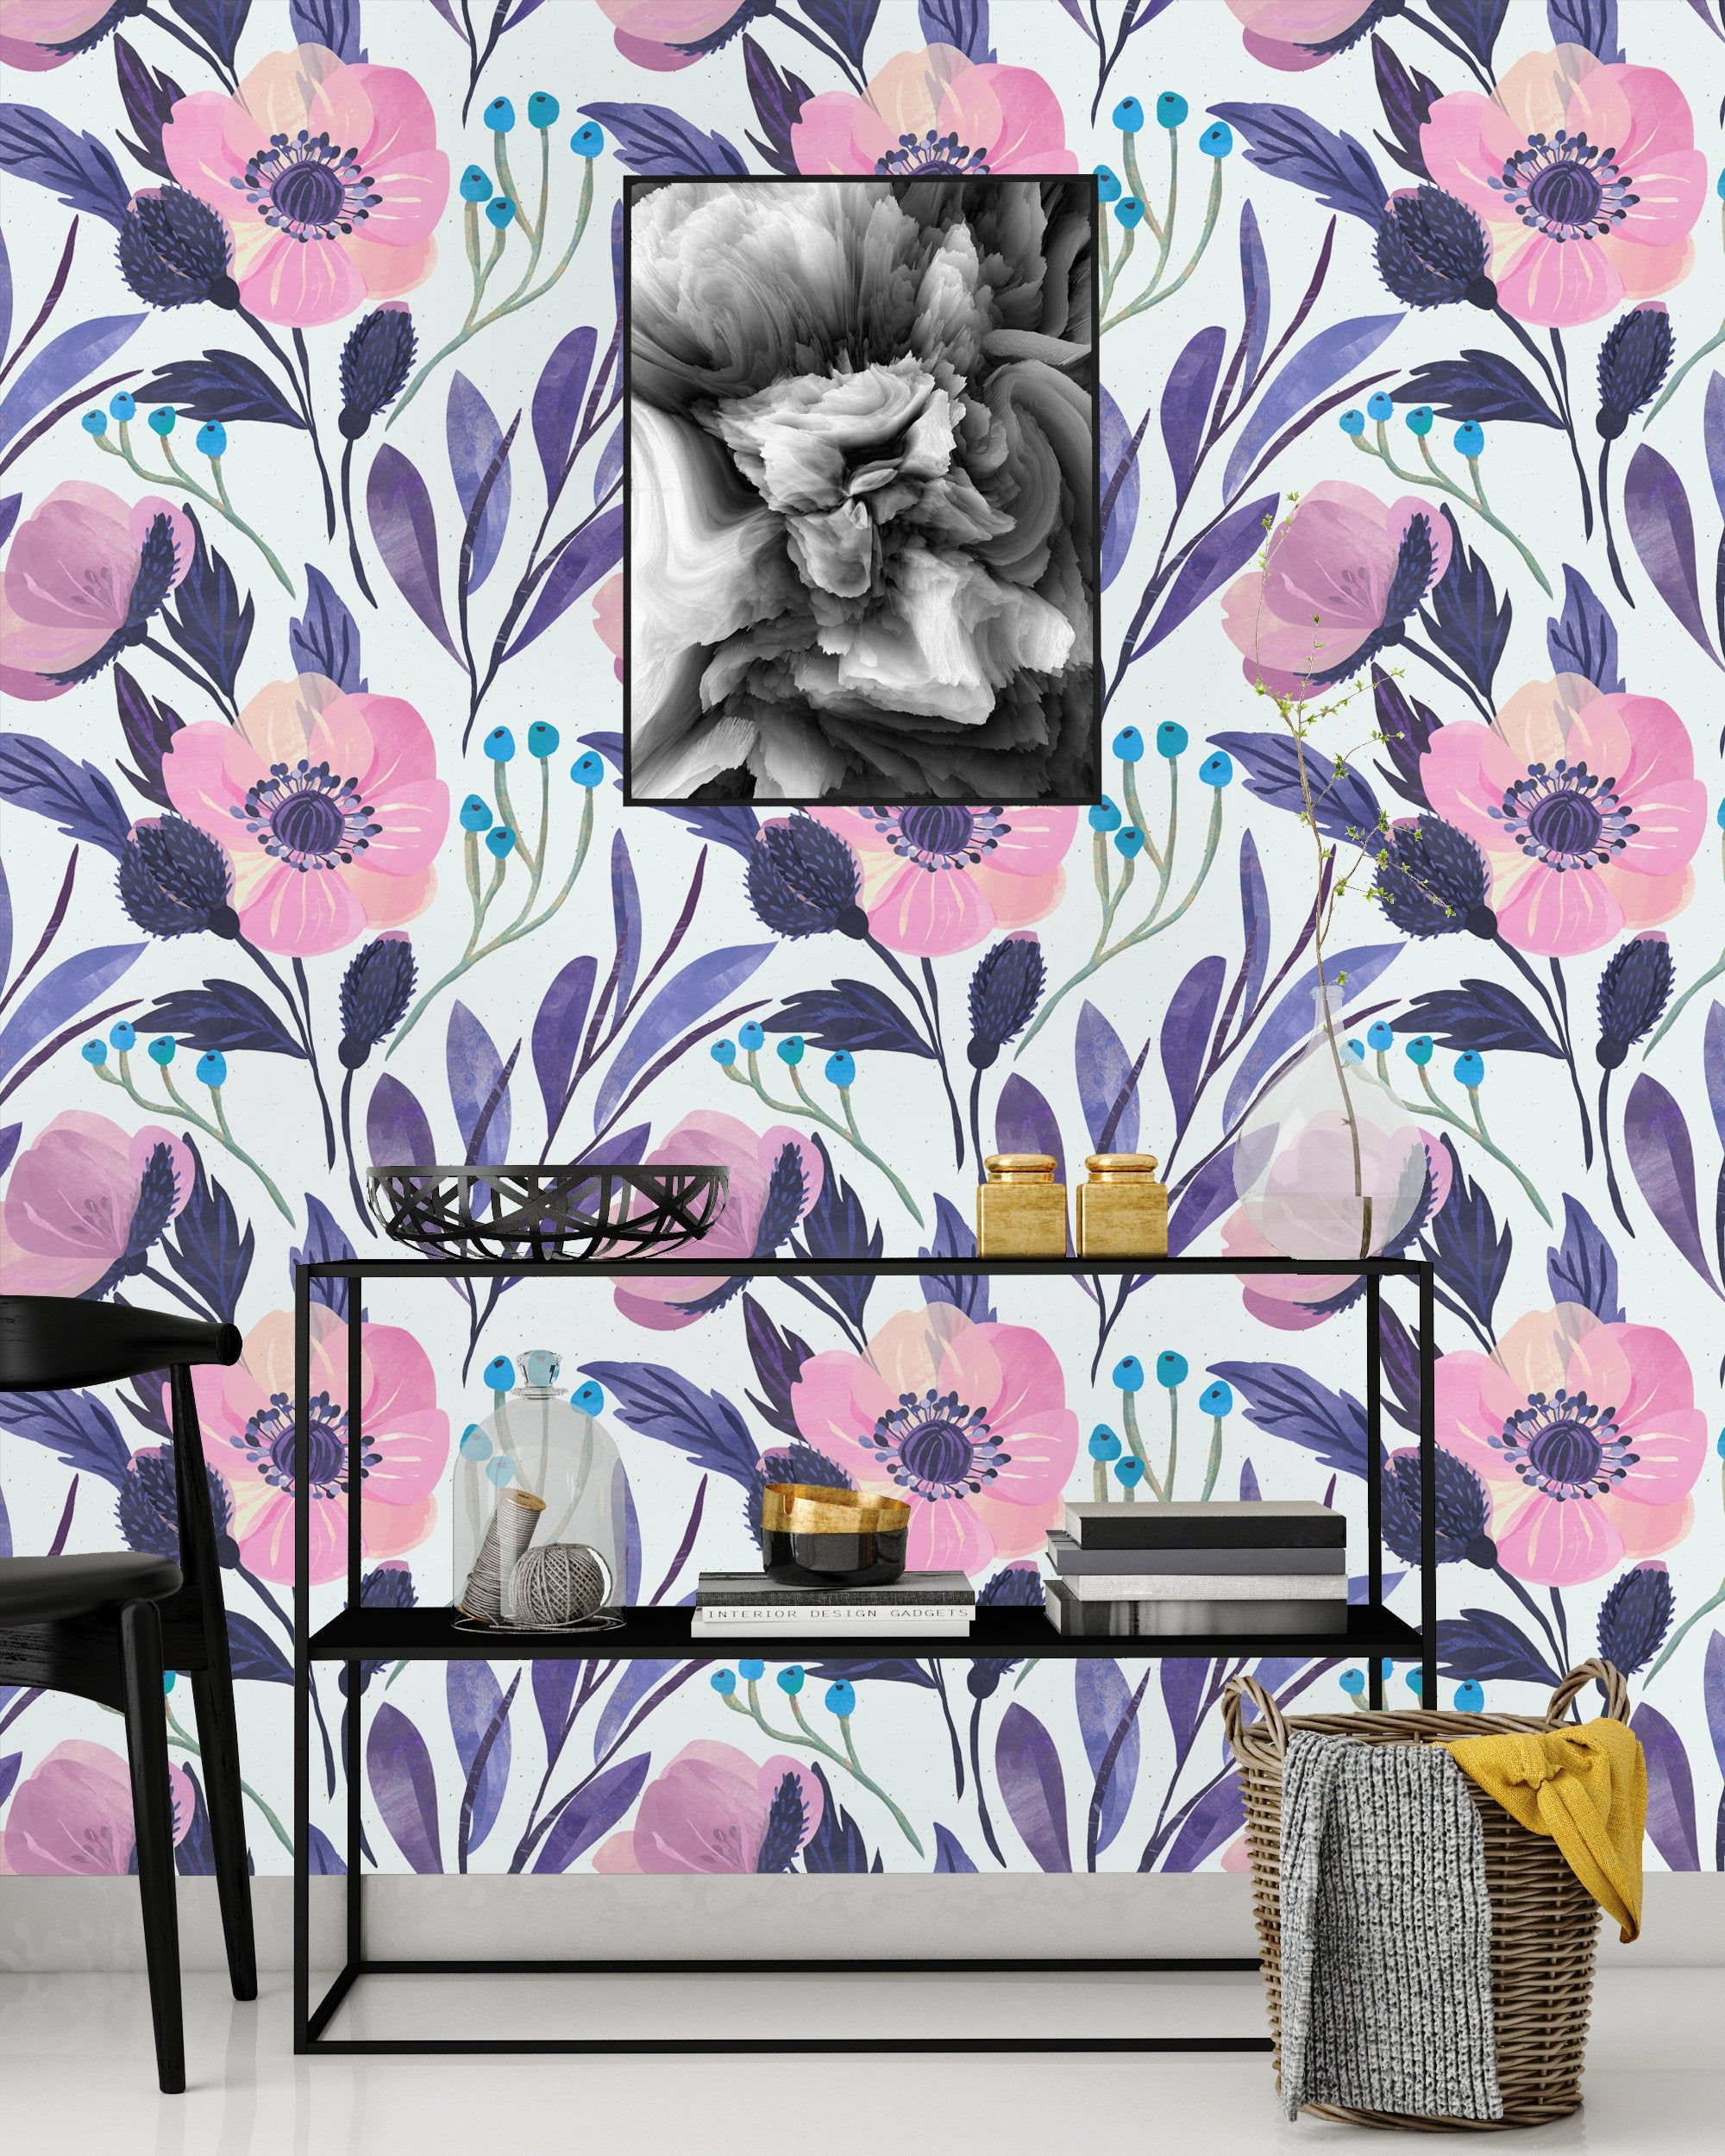 Pink And Purple Flowers Removable Wallpaper Peel Stick Mural Nursery Decor Self Adhesive Wallpaper Panels Nursery Mural Peel And Stick Wallpaper